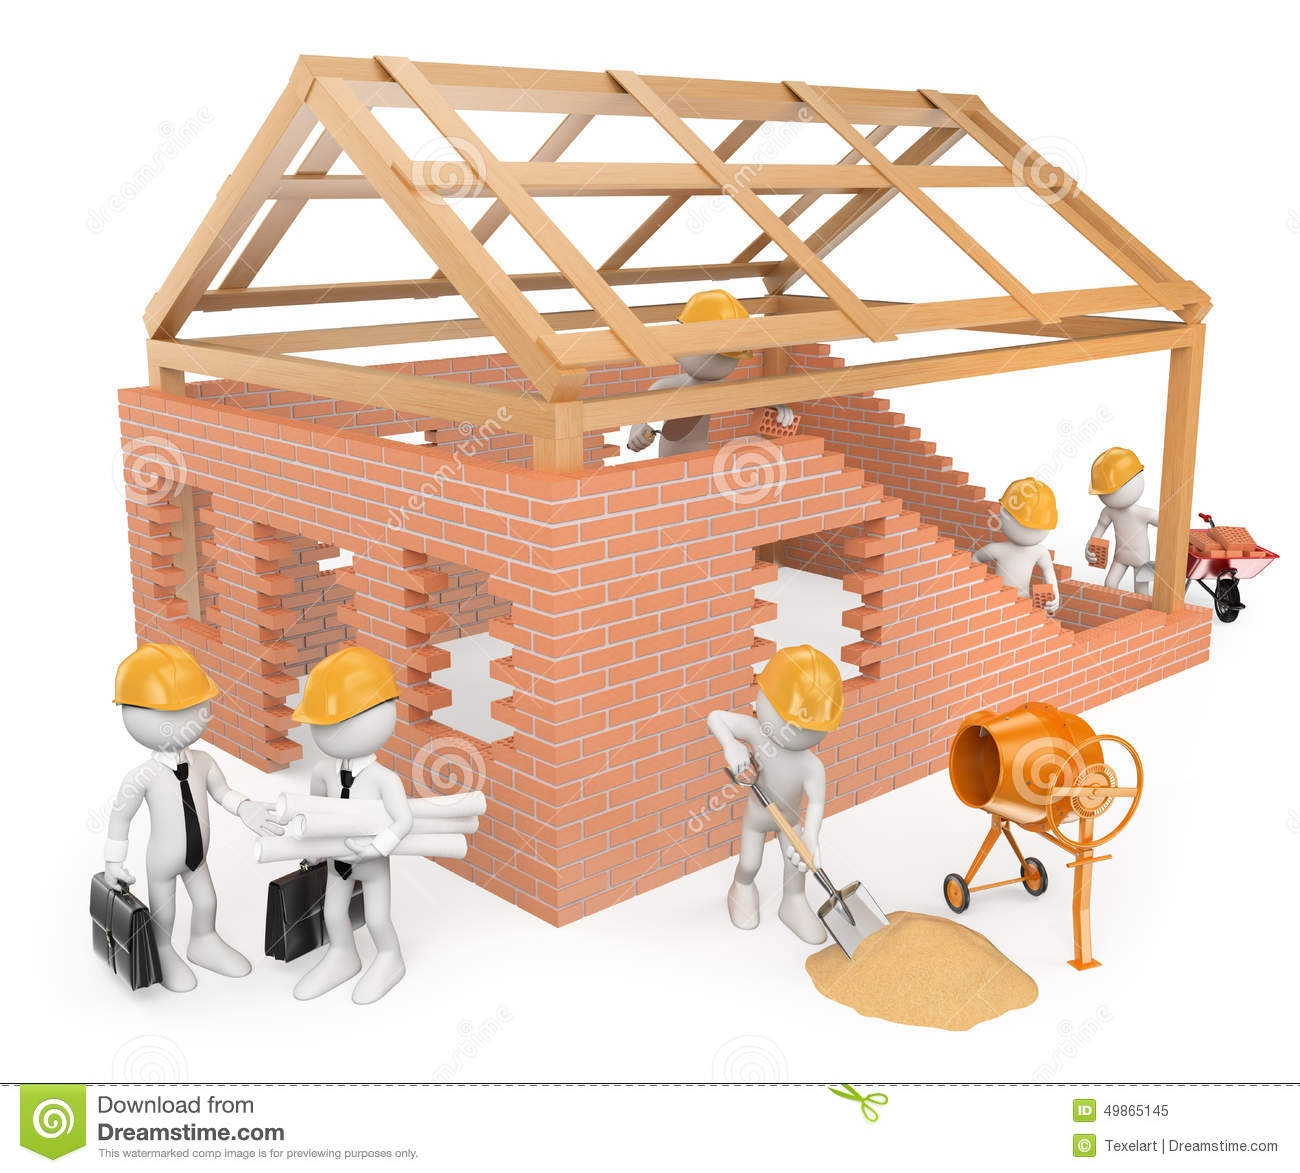 Clipart of teens building a house clipground for Building a house